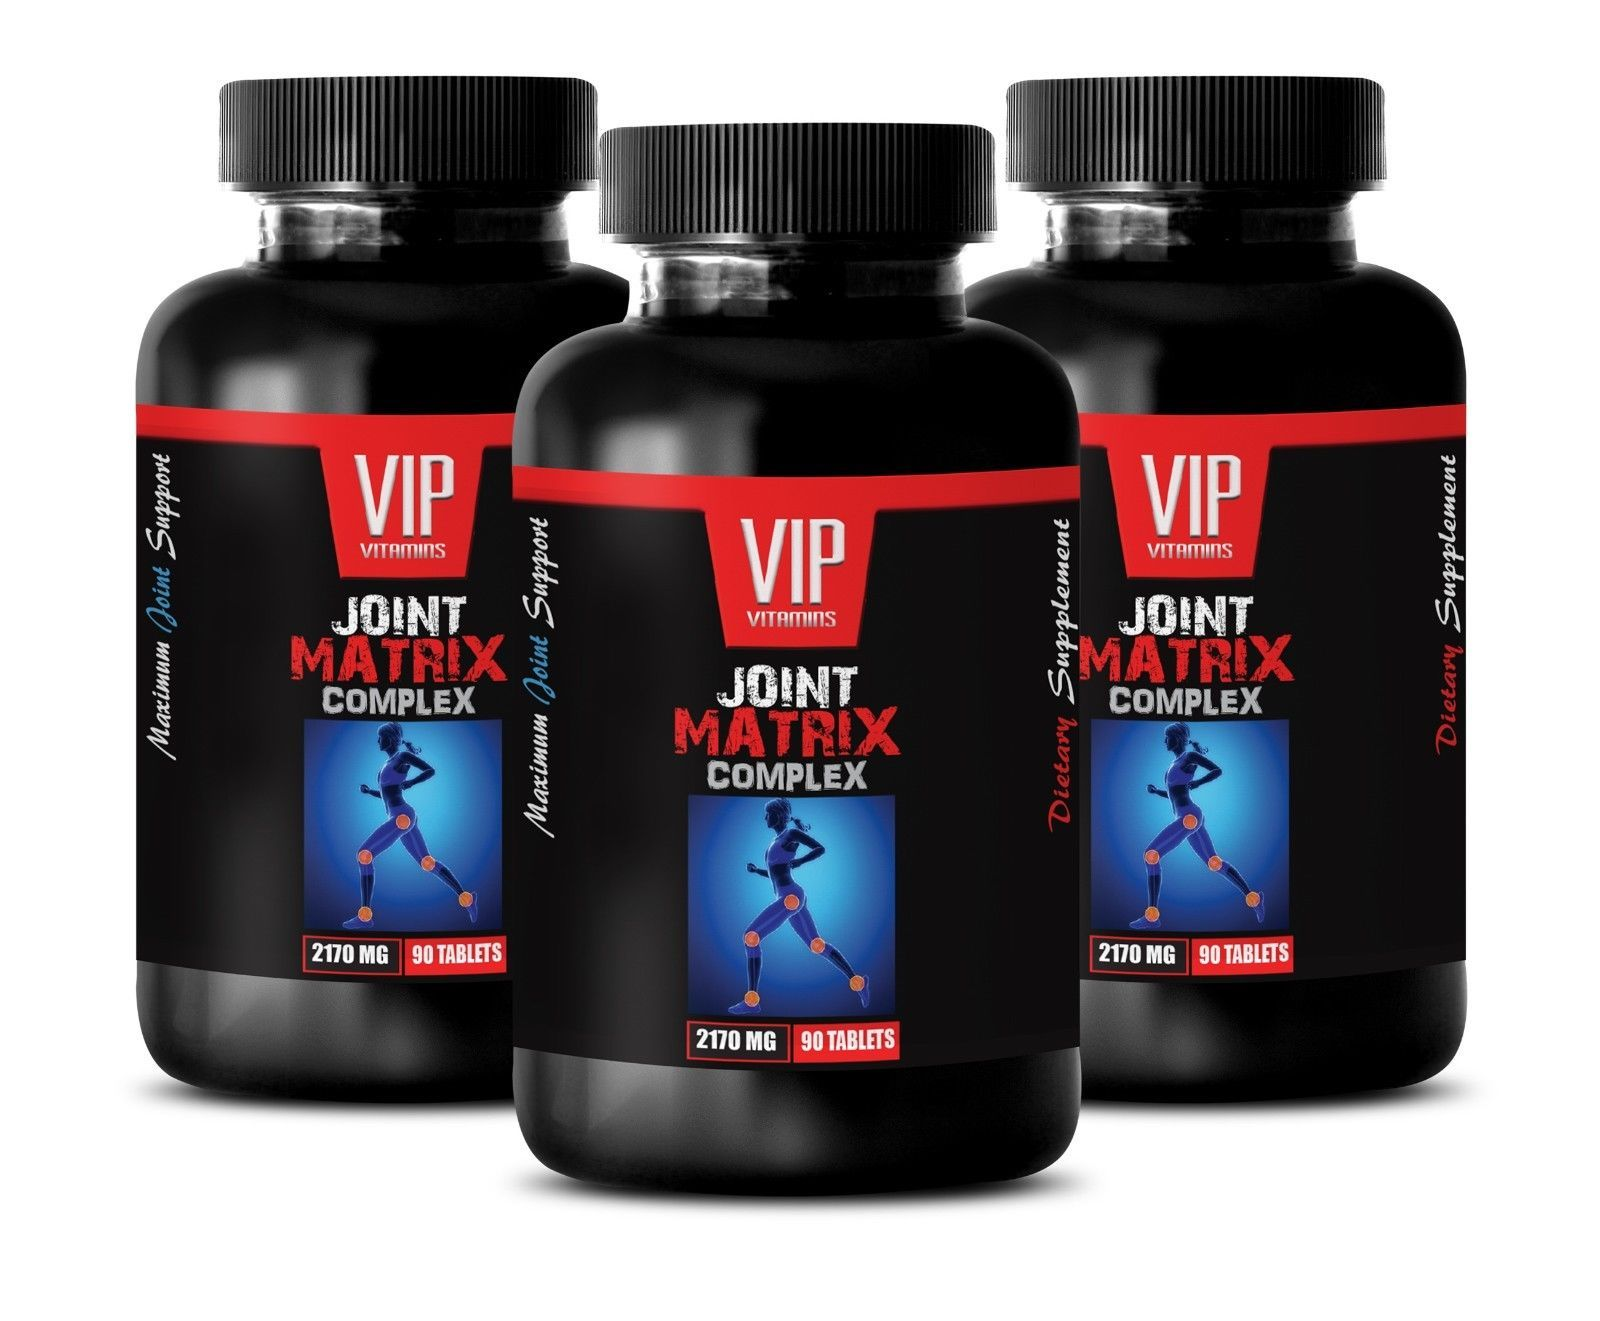 Primary image for optimum nutrition vitamins - JOINT MATRIX COMPLEX 3B - glucosamine powder